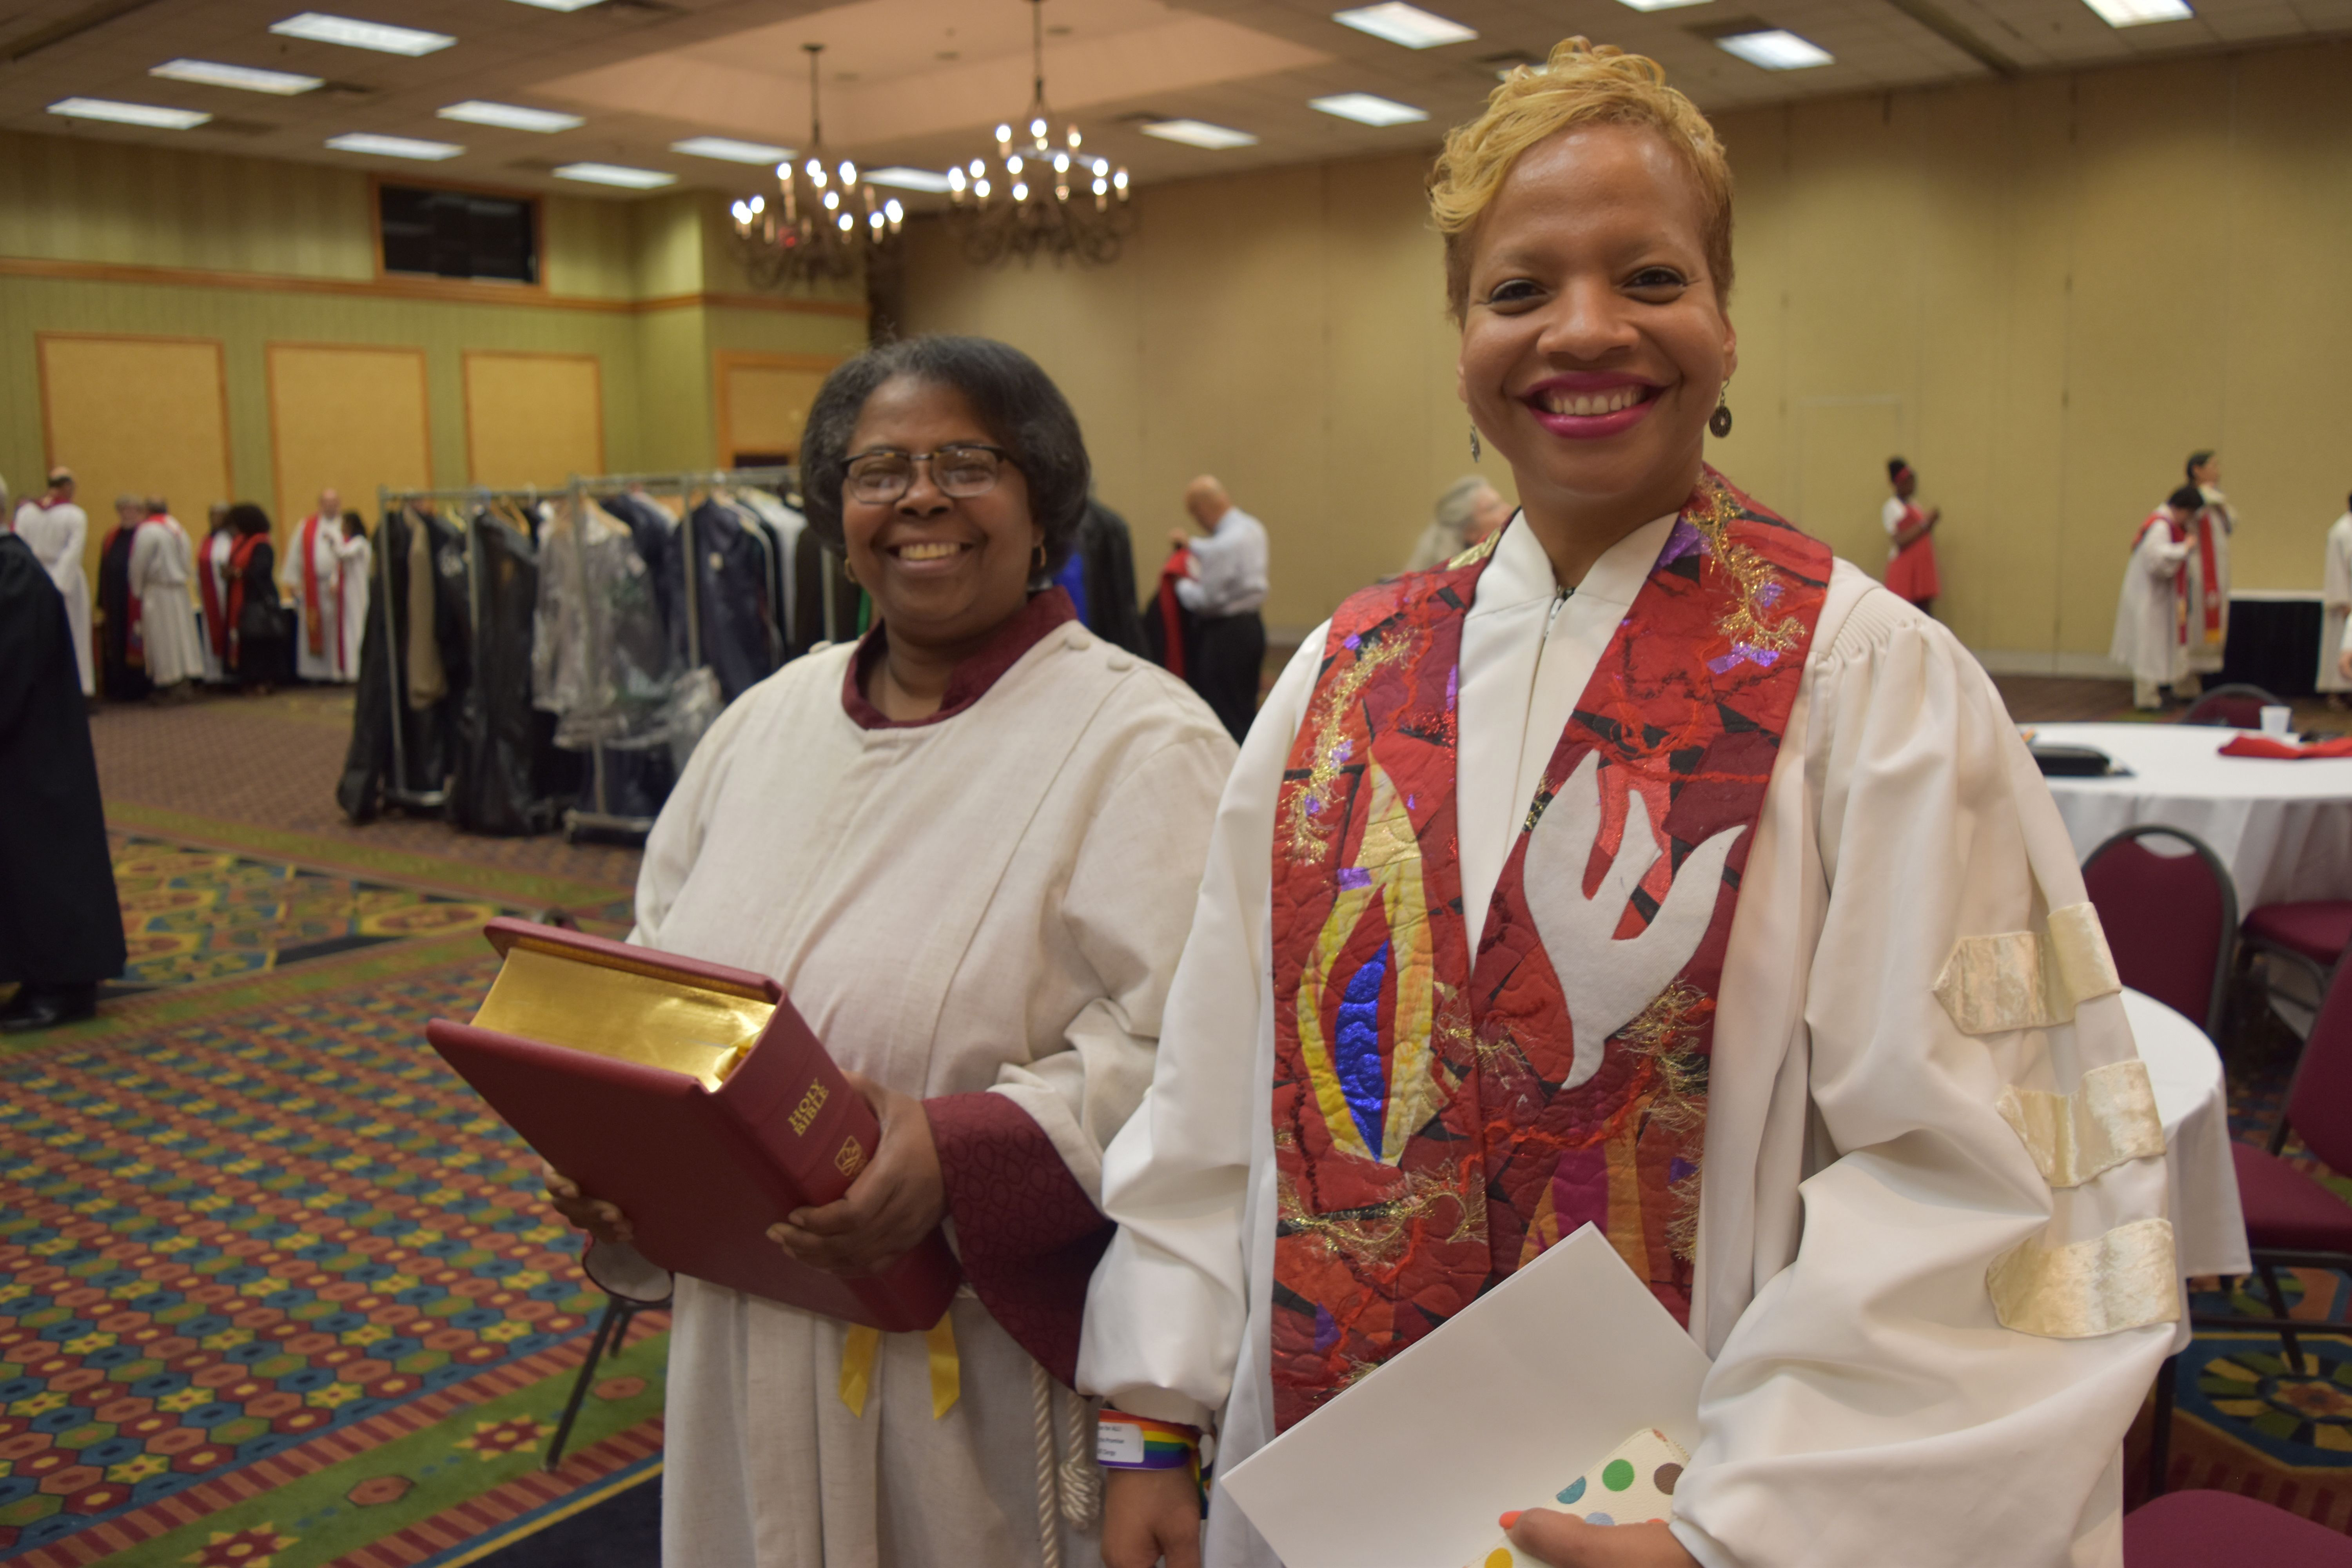 Bishop Tracy S. Malone (right) and the Rev. Darnearther Murph-Heath before the 2015 ordination service at the Northern Illinois Conference. Photo courtesy of the Northern Illinois Conference.